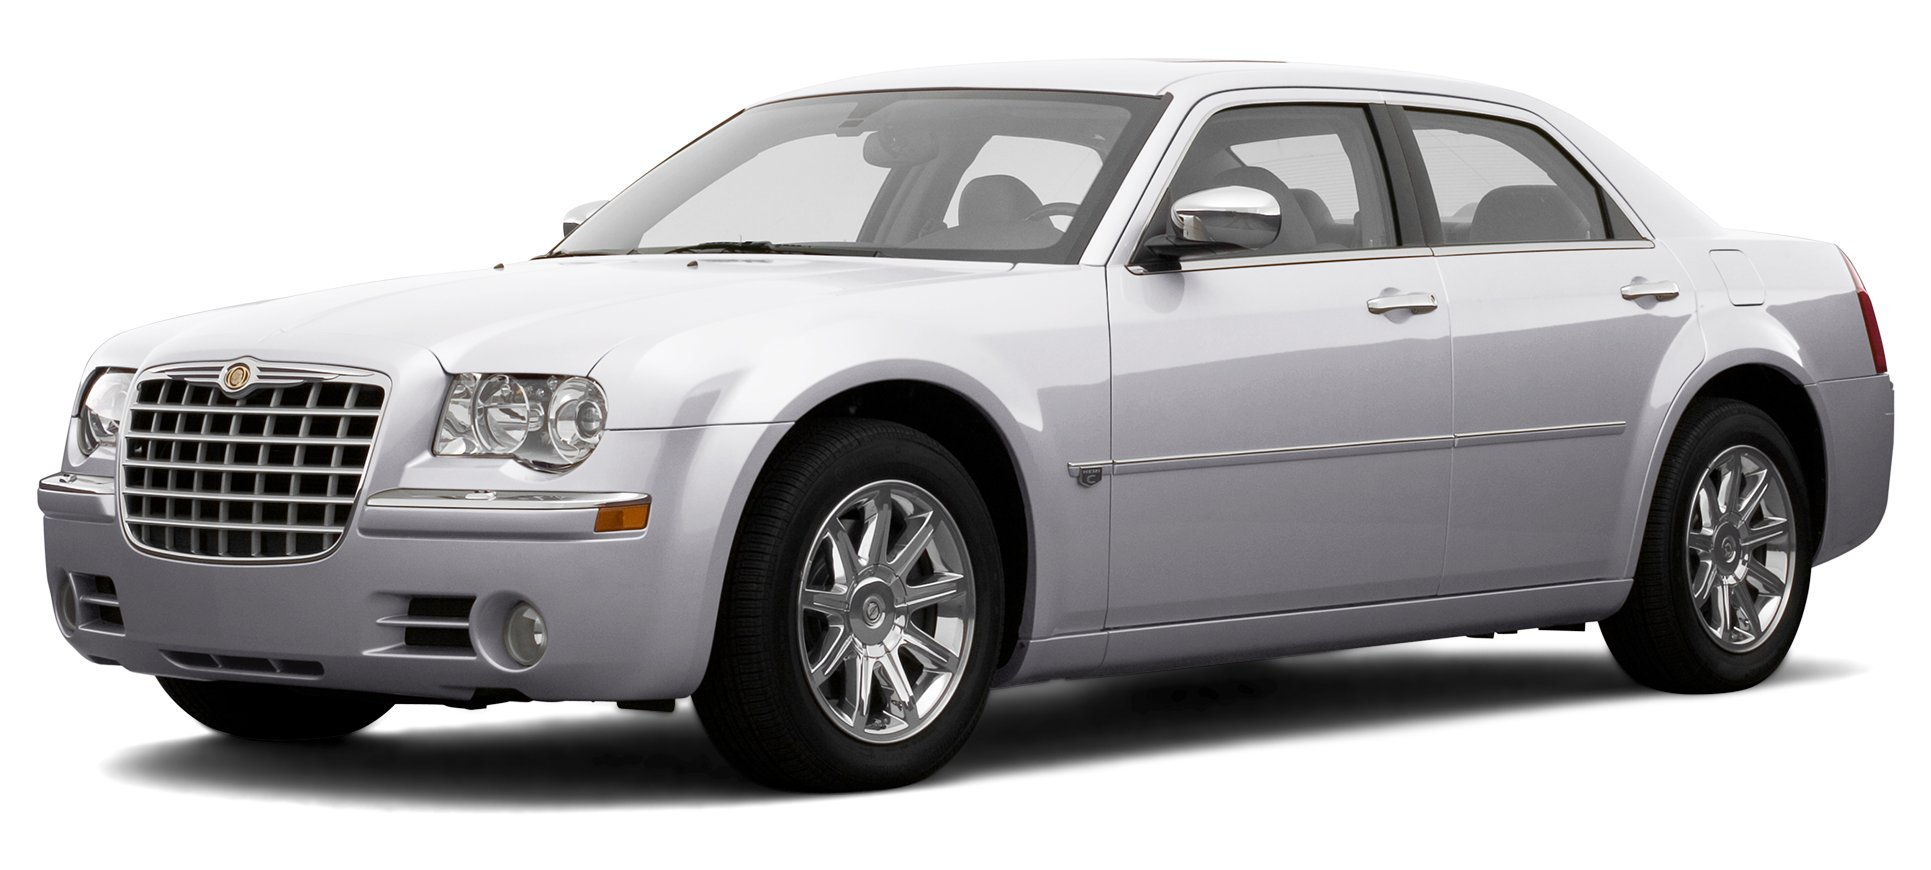 2005 2006 Chrysler 300 300c Workshop Service Repair Manual